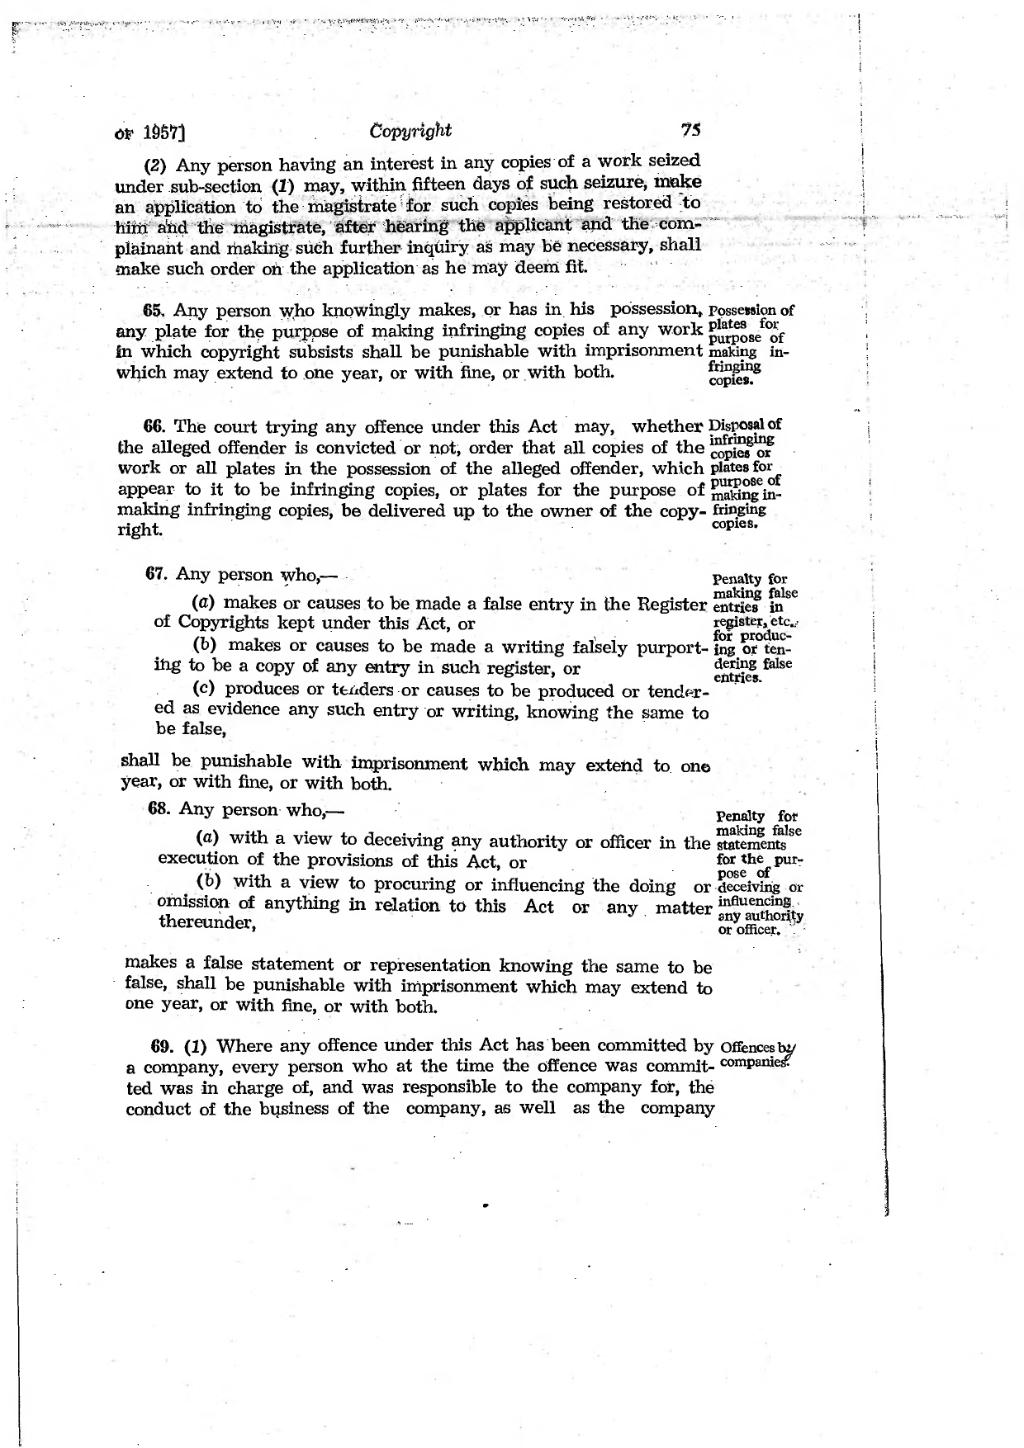 page indian copyright act 1957 djvu 35 wikisource the free online